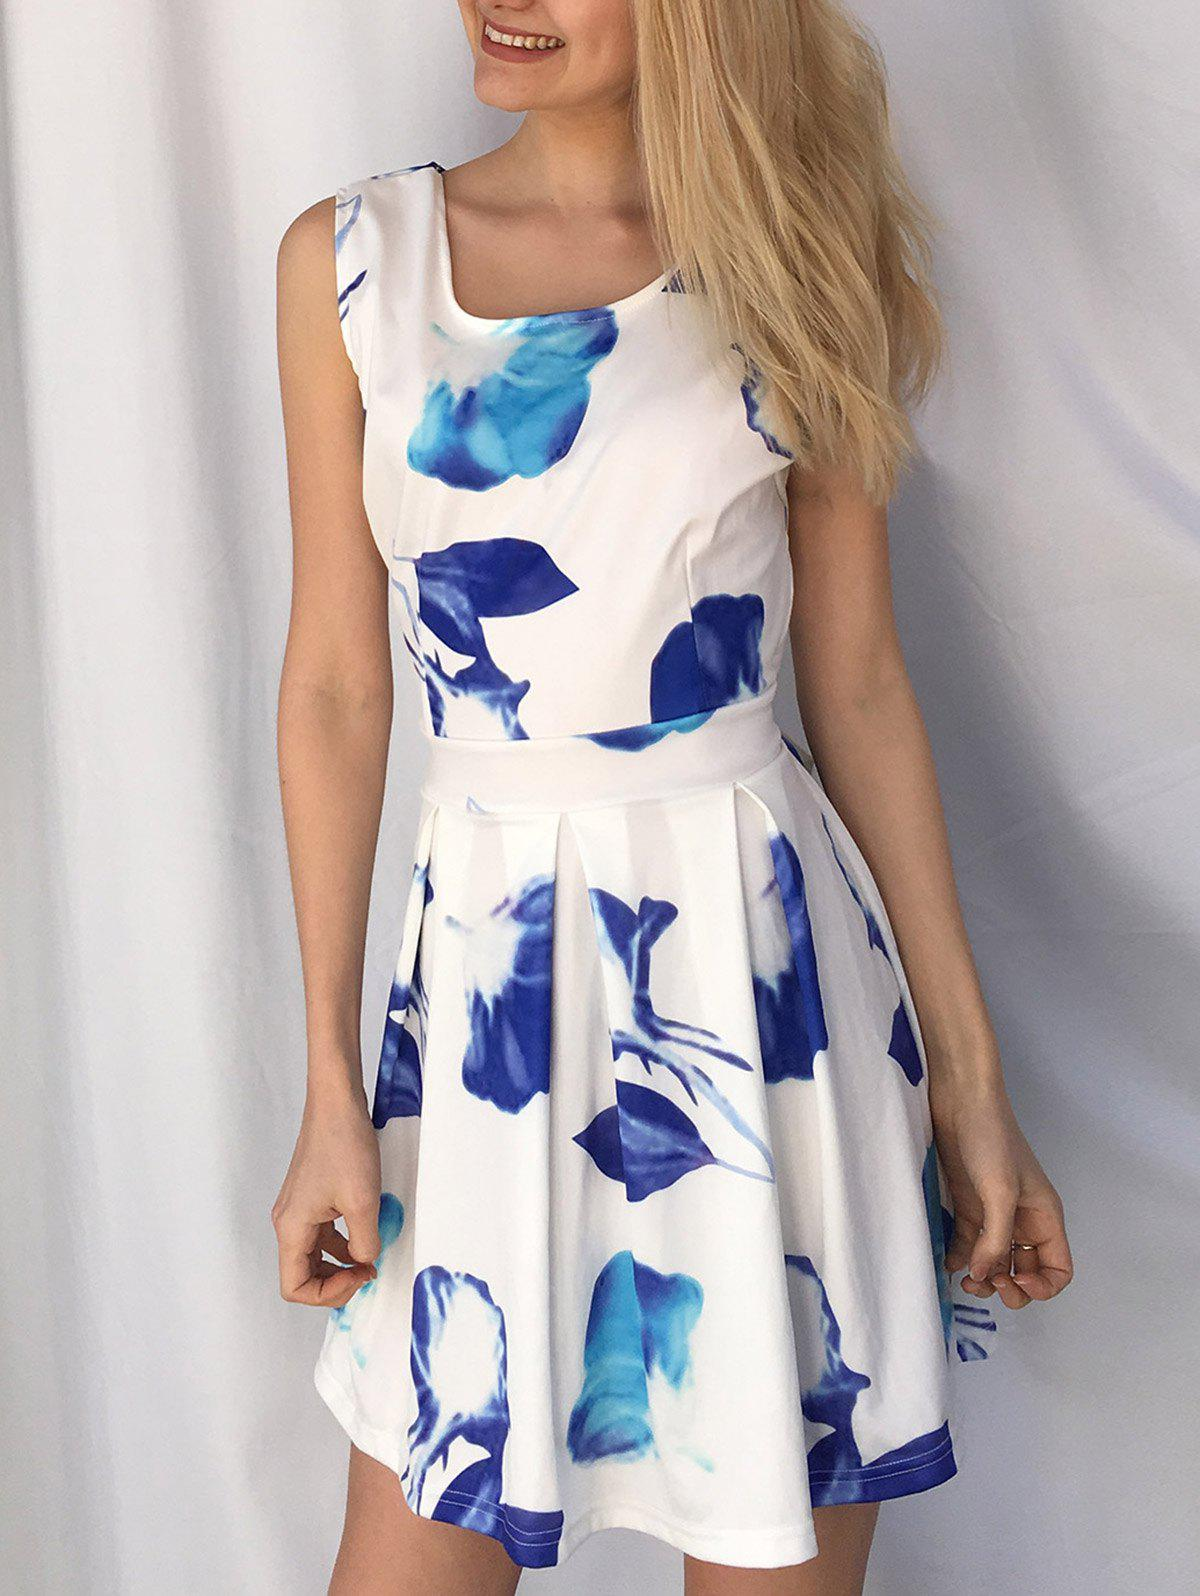 Leisure Sleeveless Scoop Neck Hollow Out Floral Print Women's Dress - BLUE/WHITE XL